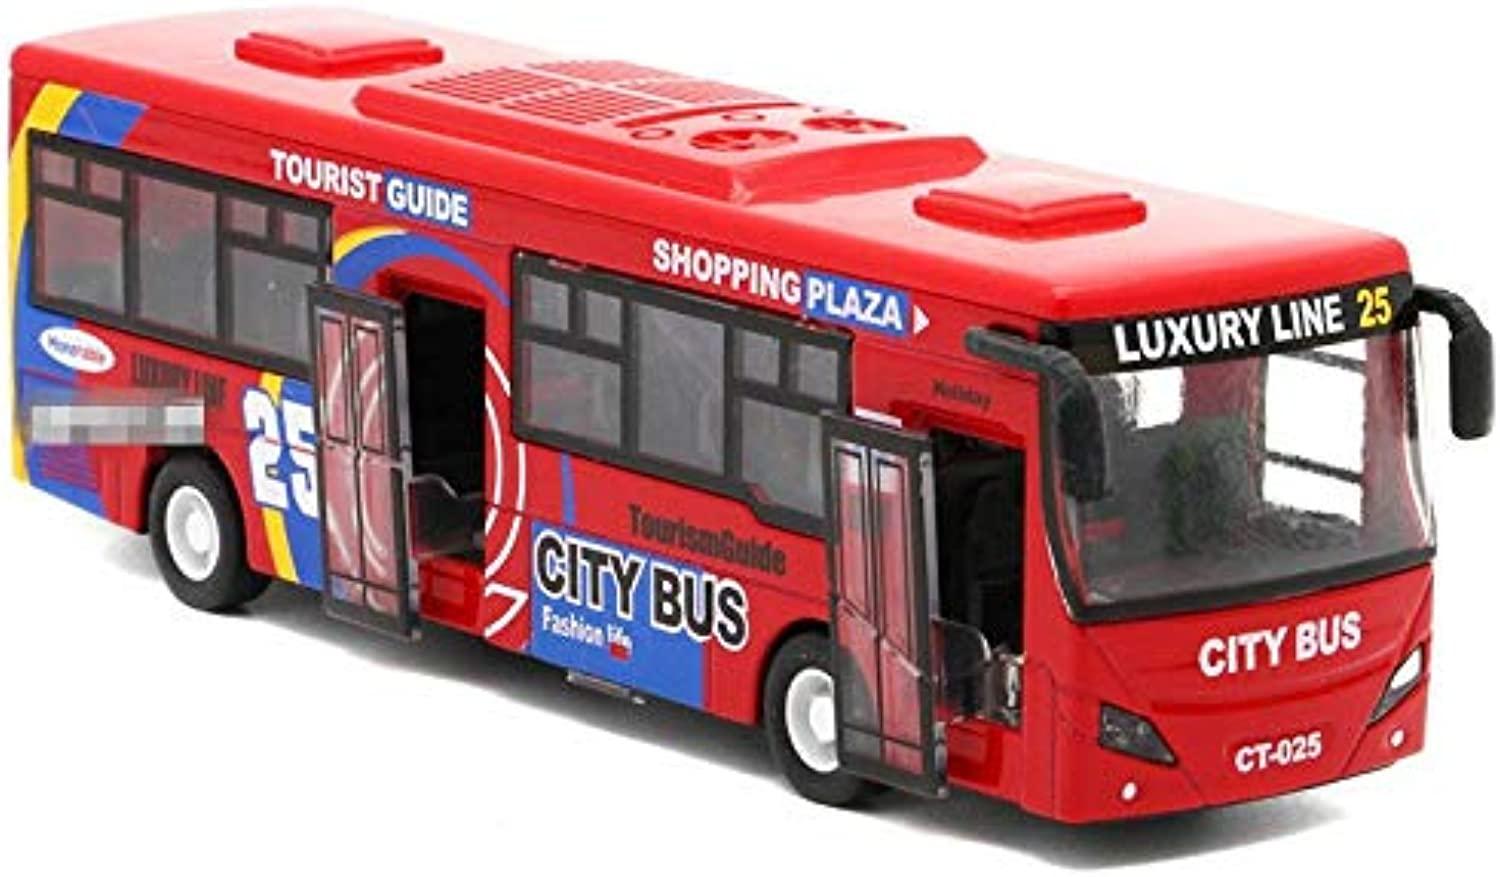 Generic 1 32 Alloy car Models,high Simulation City Bus , Metal diecasts, Toy Vehicles, Pull Back & Flashing & Musical, Red